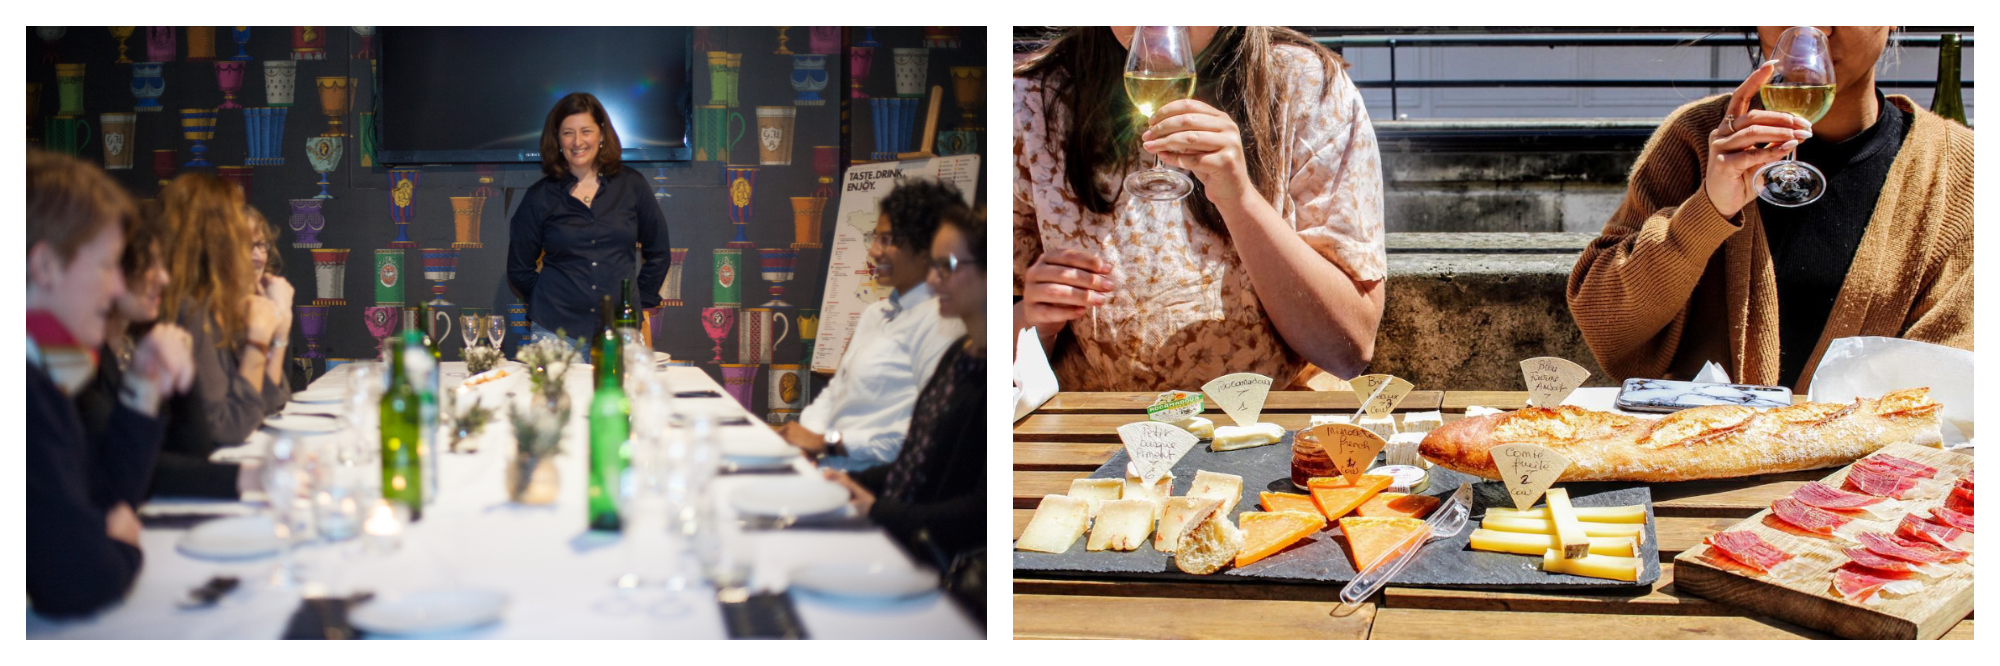 On left: Cynthia Coutu of Delectabulles, her champagne master class company, hosts a workshop dinner for an intimate group of attendees. On right: Two guests enjoy glasses of wine and cheese and charcuterie boards at a tasting tour with Flavors of Paris, founded by Lisa Rankin.